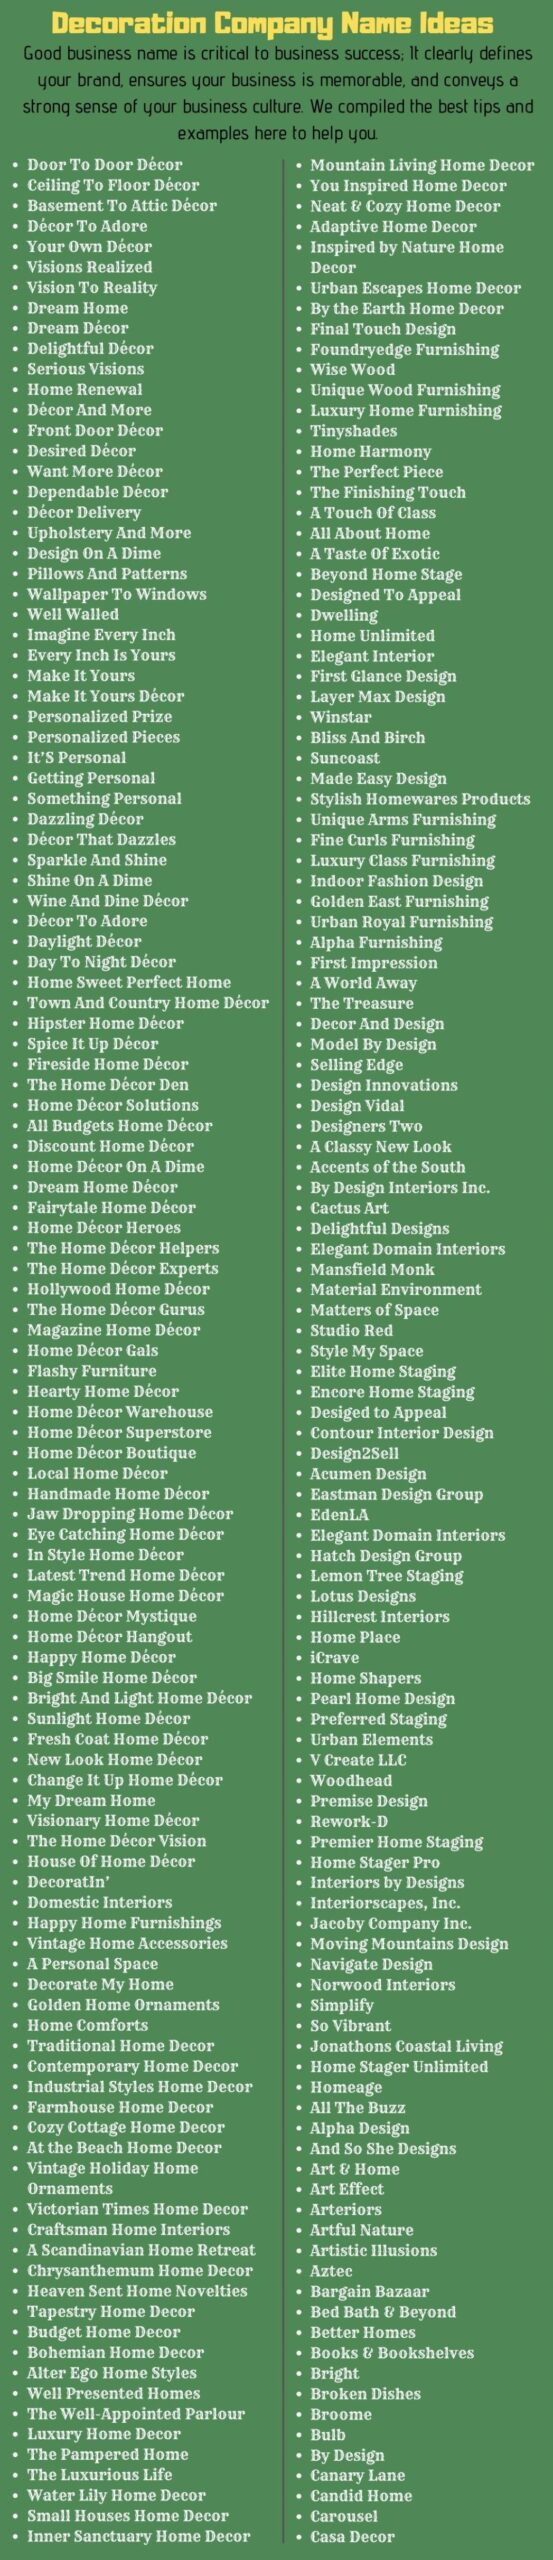 11+ Catchy Home Decor Business Names Ideas of All Time